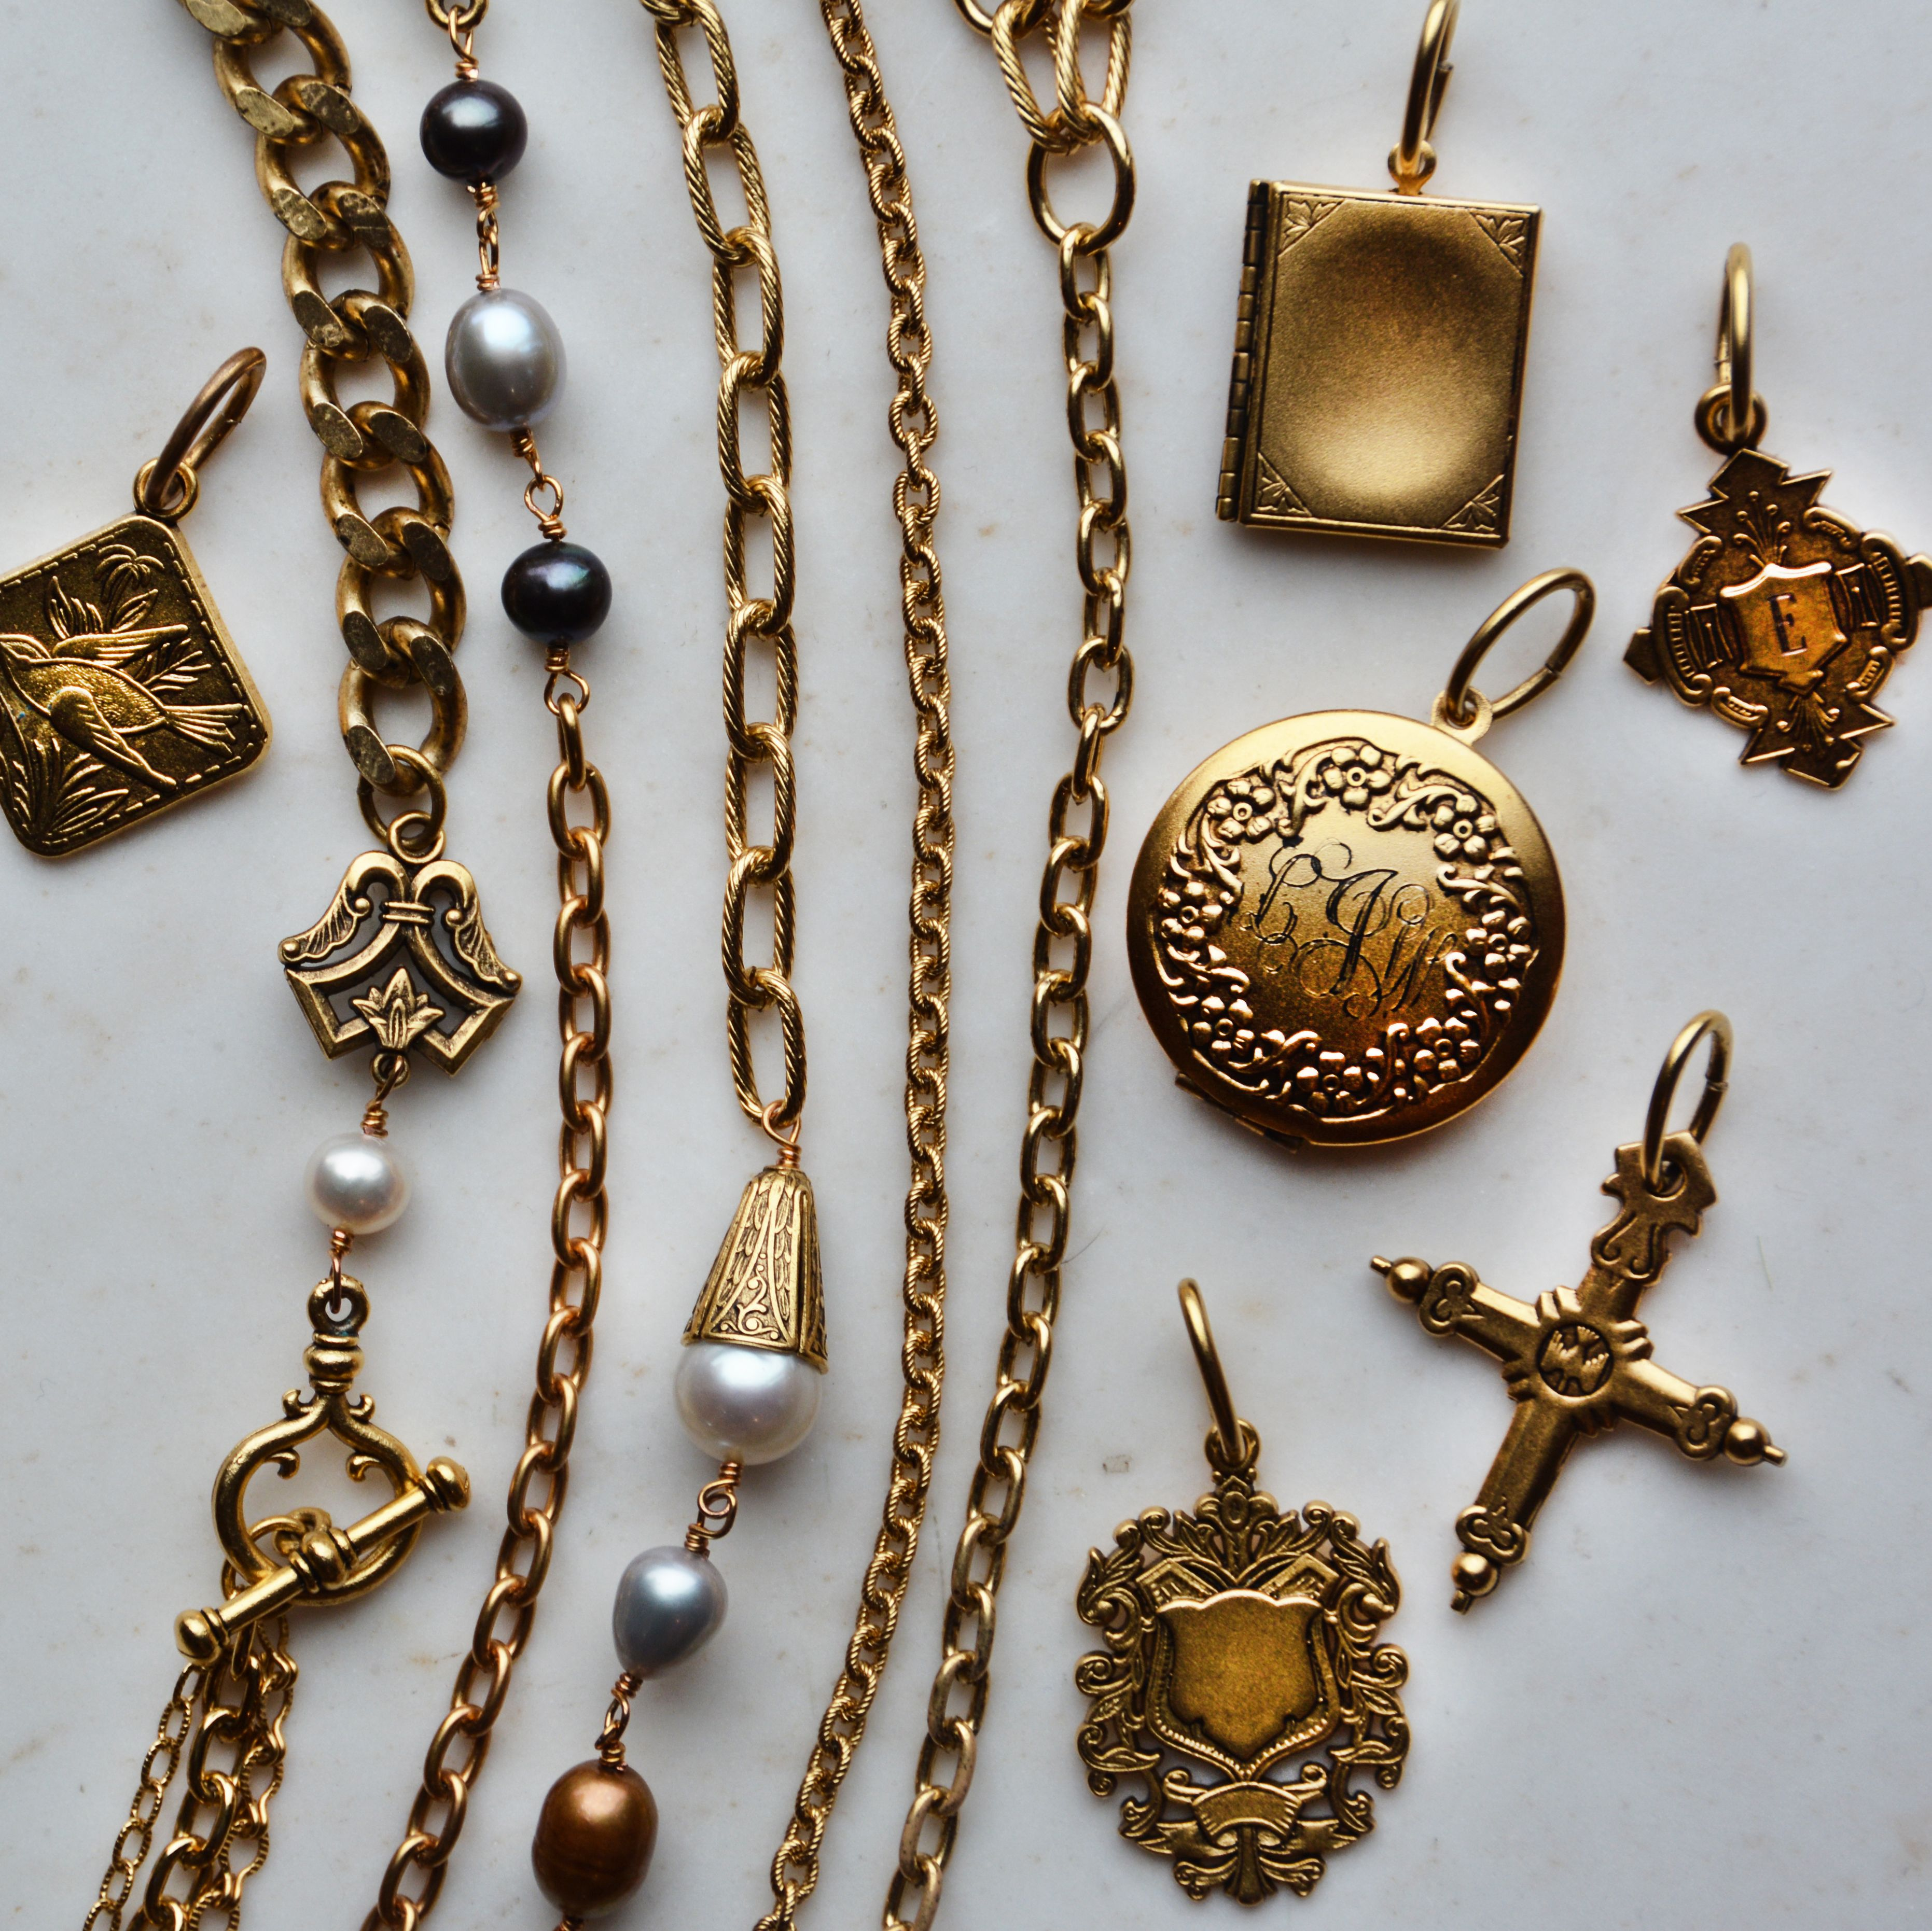 Interchangeable pendants and necklace bases for infinite styling interchangeable pendants and necklace bases for infinite styling options start your collection today aloadofball Images